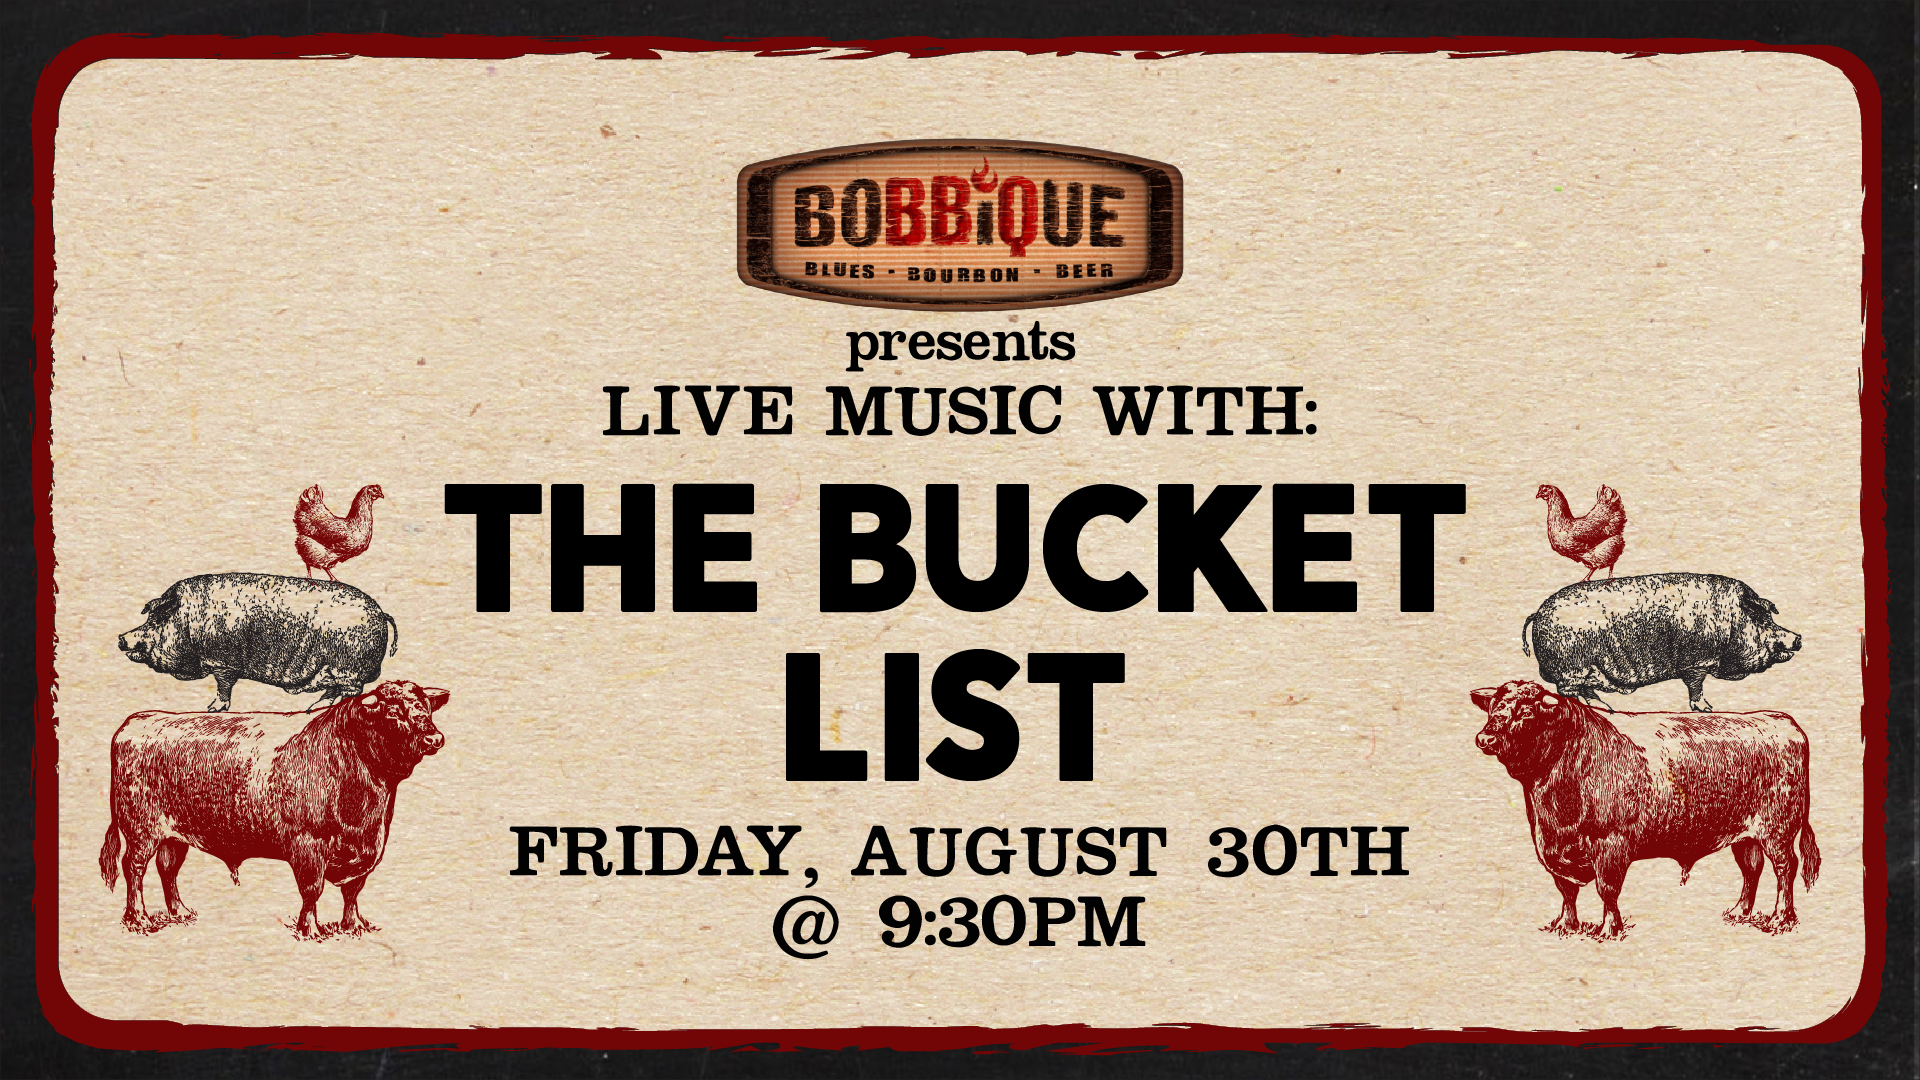 Live Music with The Bucket List